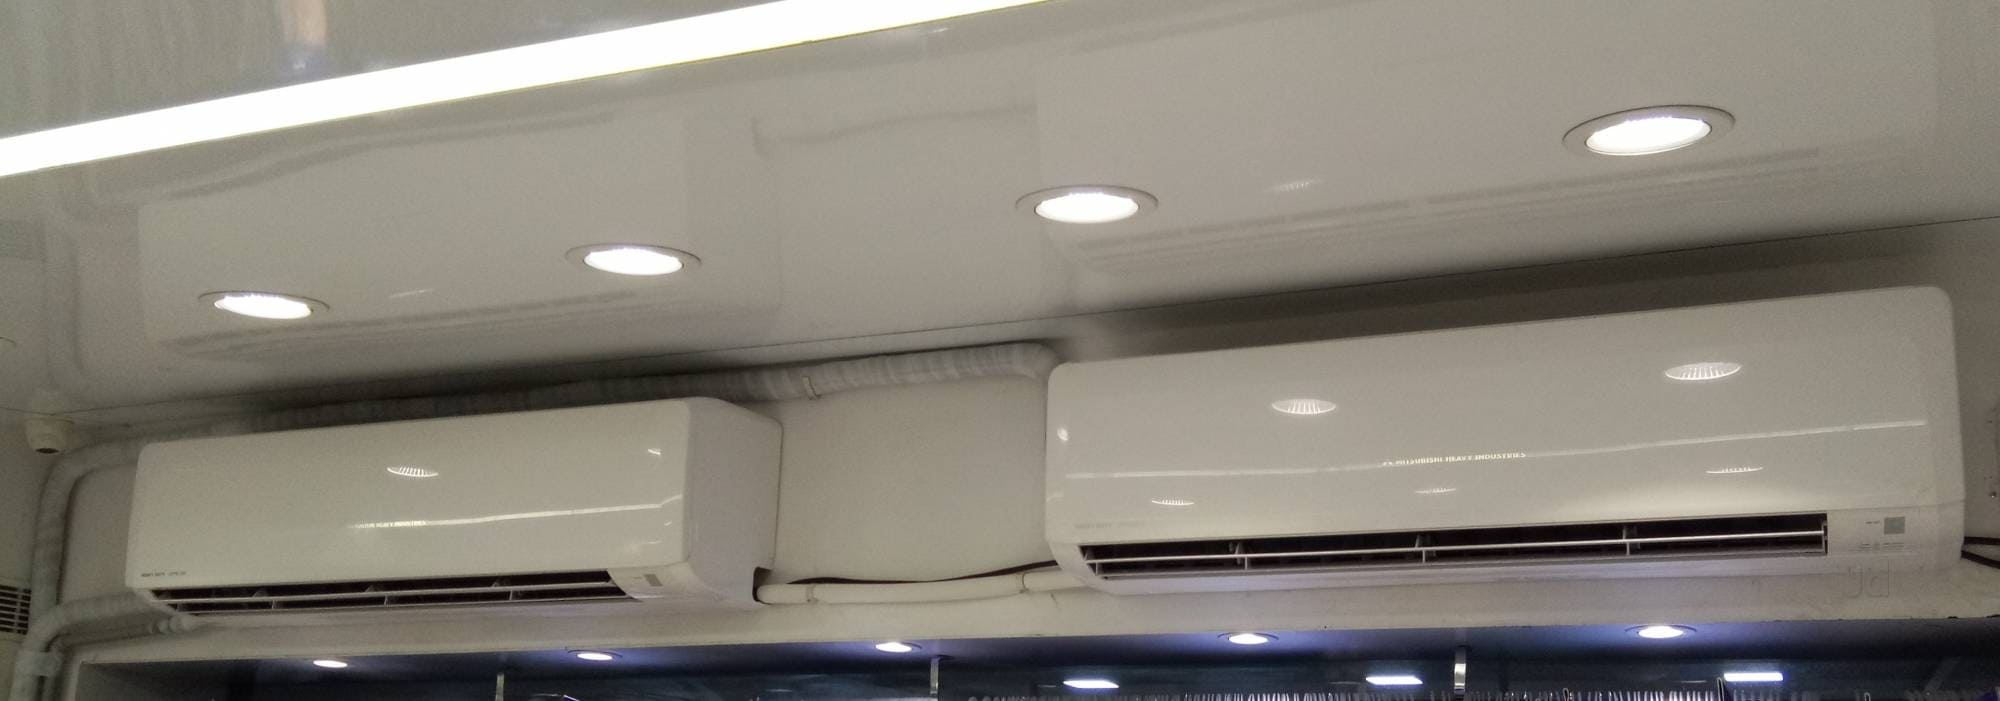 1418b83a4b6 Top 100 AC Repair Services in Thane West - Best Air Conditioning ...